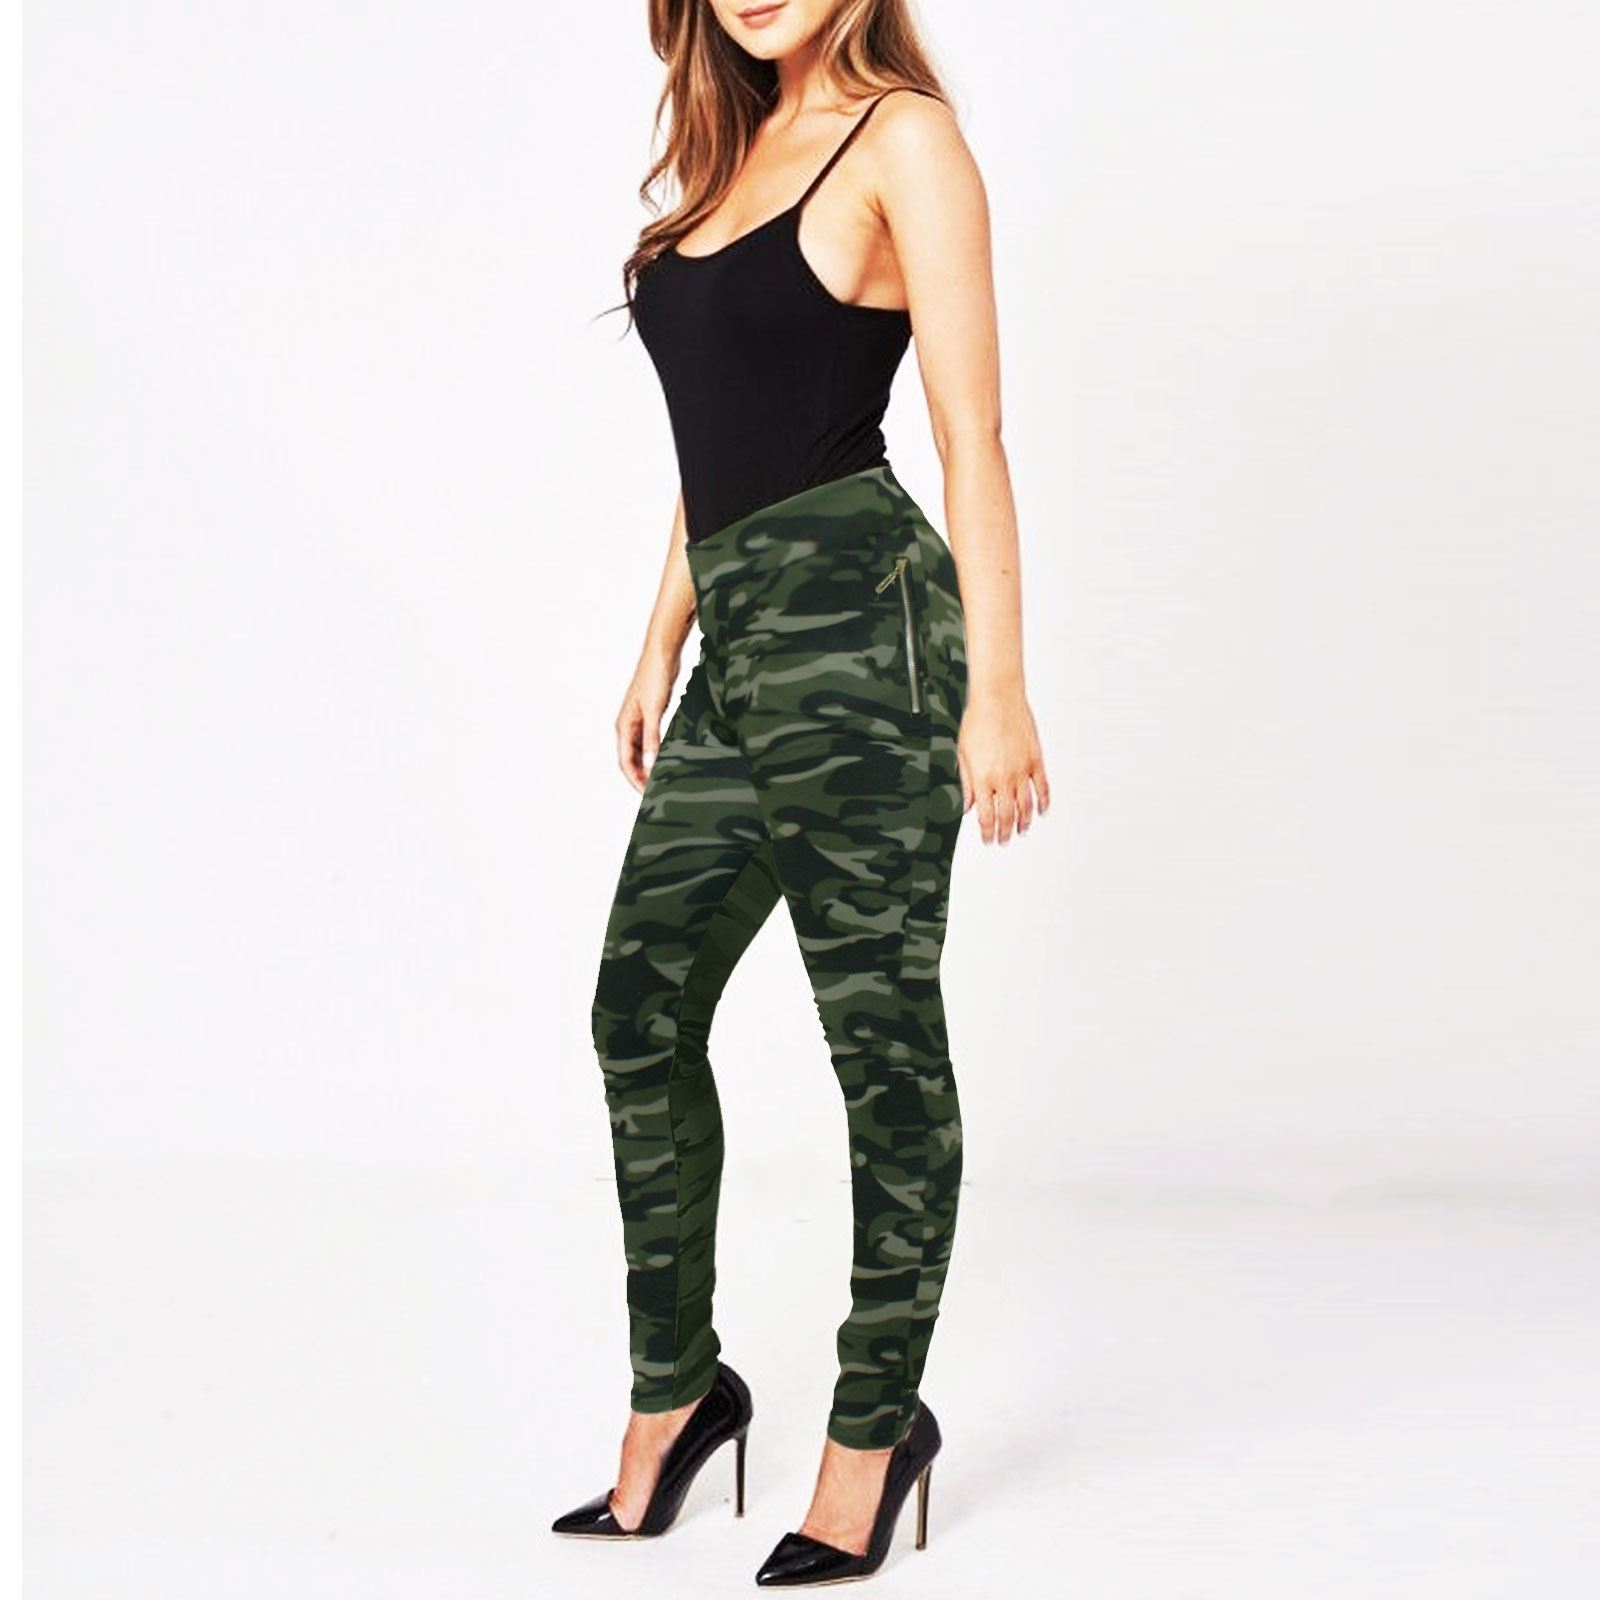 Good Prices matching in colour men/man Details about WOMENS CAMOUFLAGE TROUSERS HIGH WAIST TRACKSUIT JOGGERS  LADIES GYM SWEAT PANTS